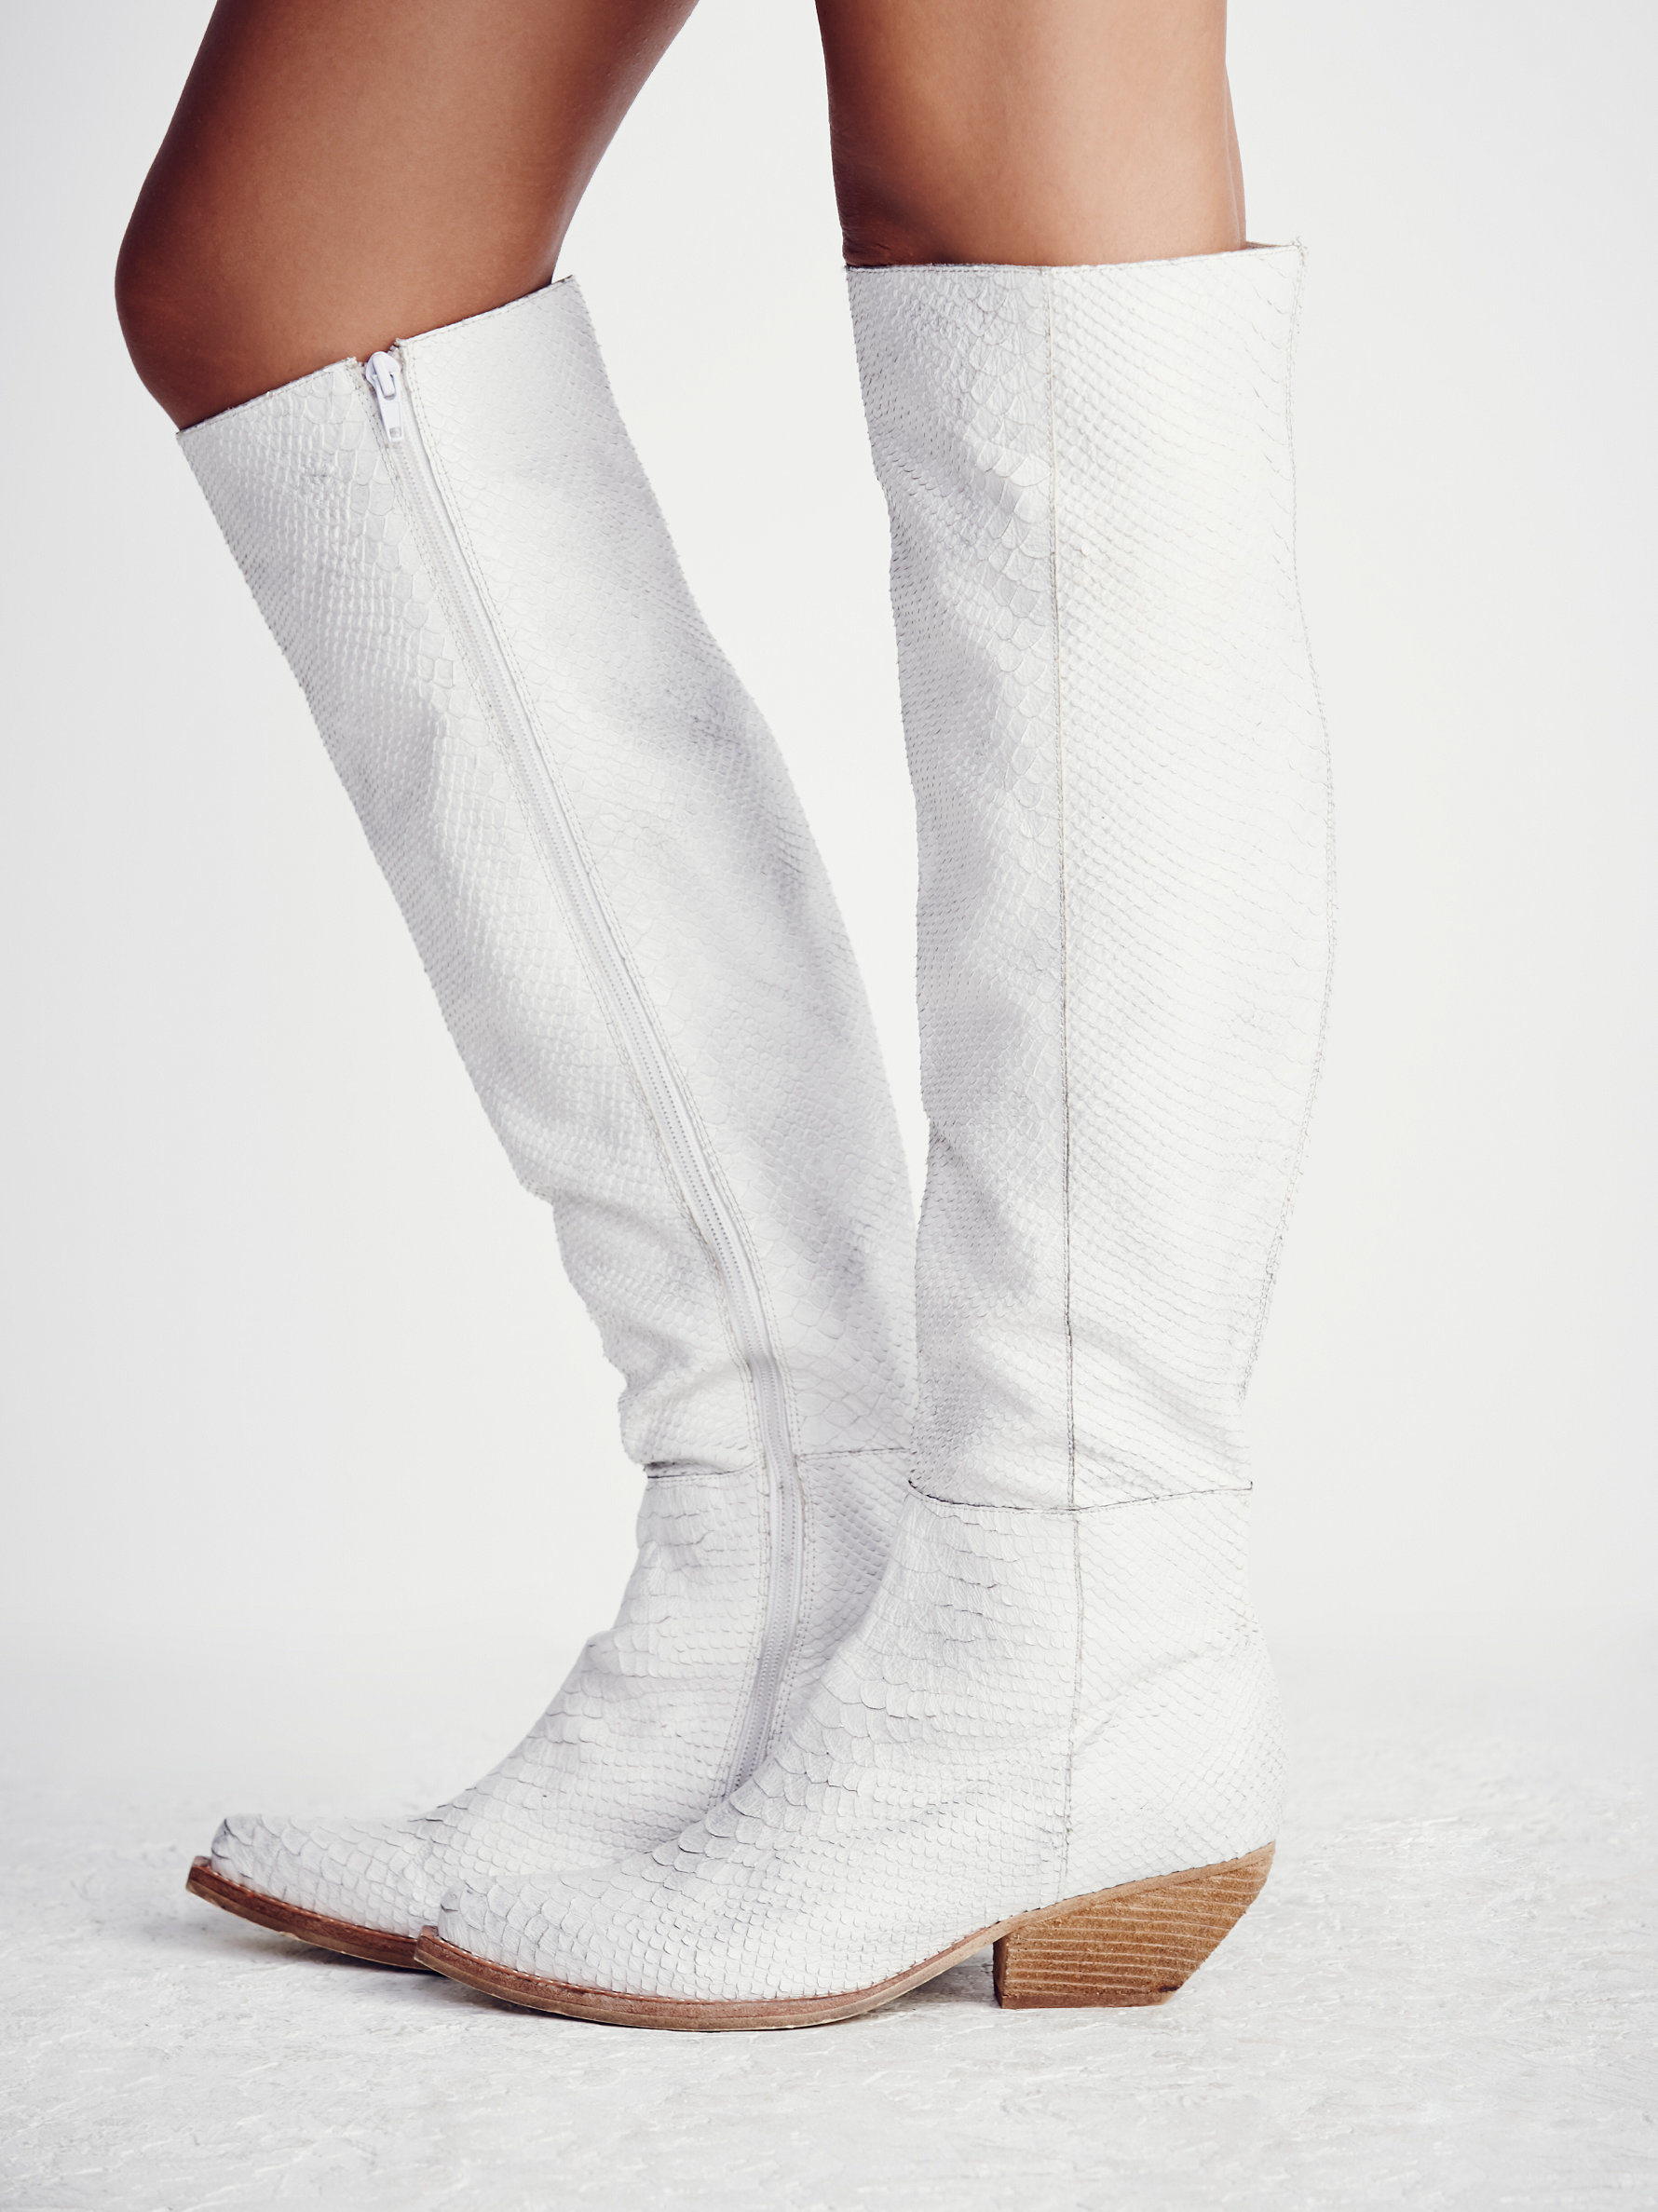 Leather Limitless Tall Boot in White